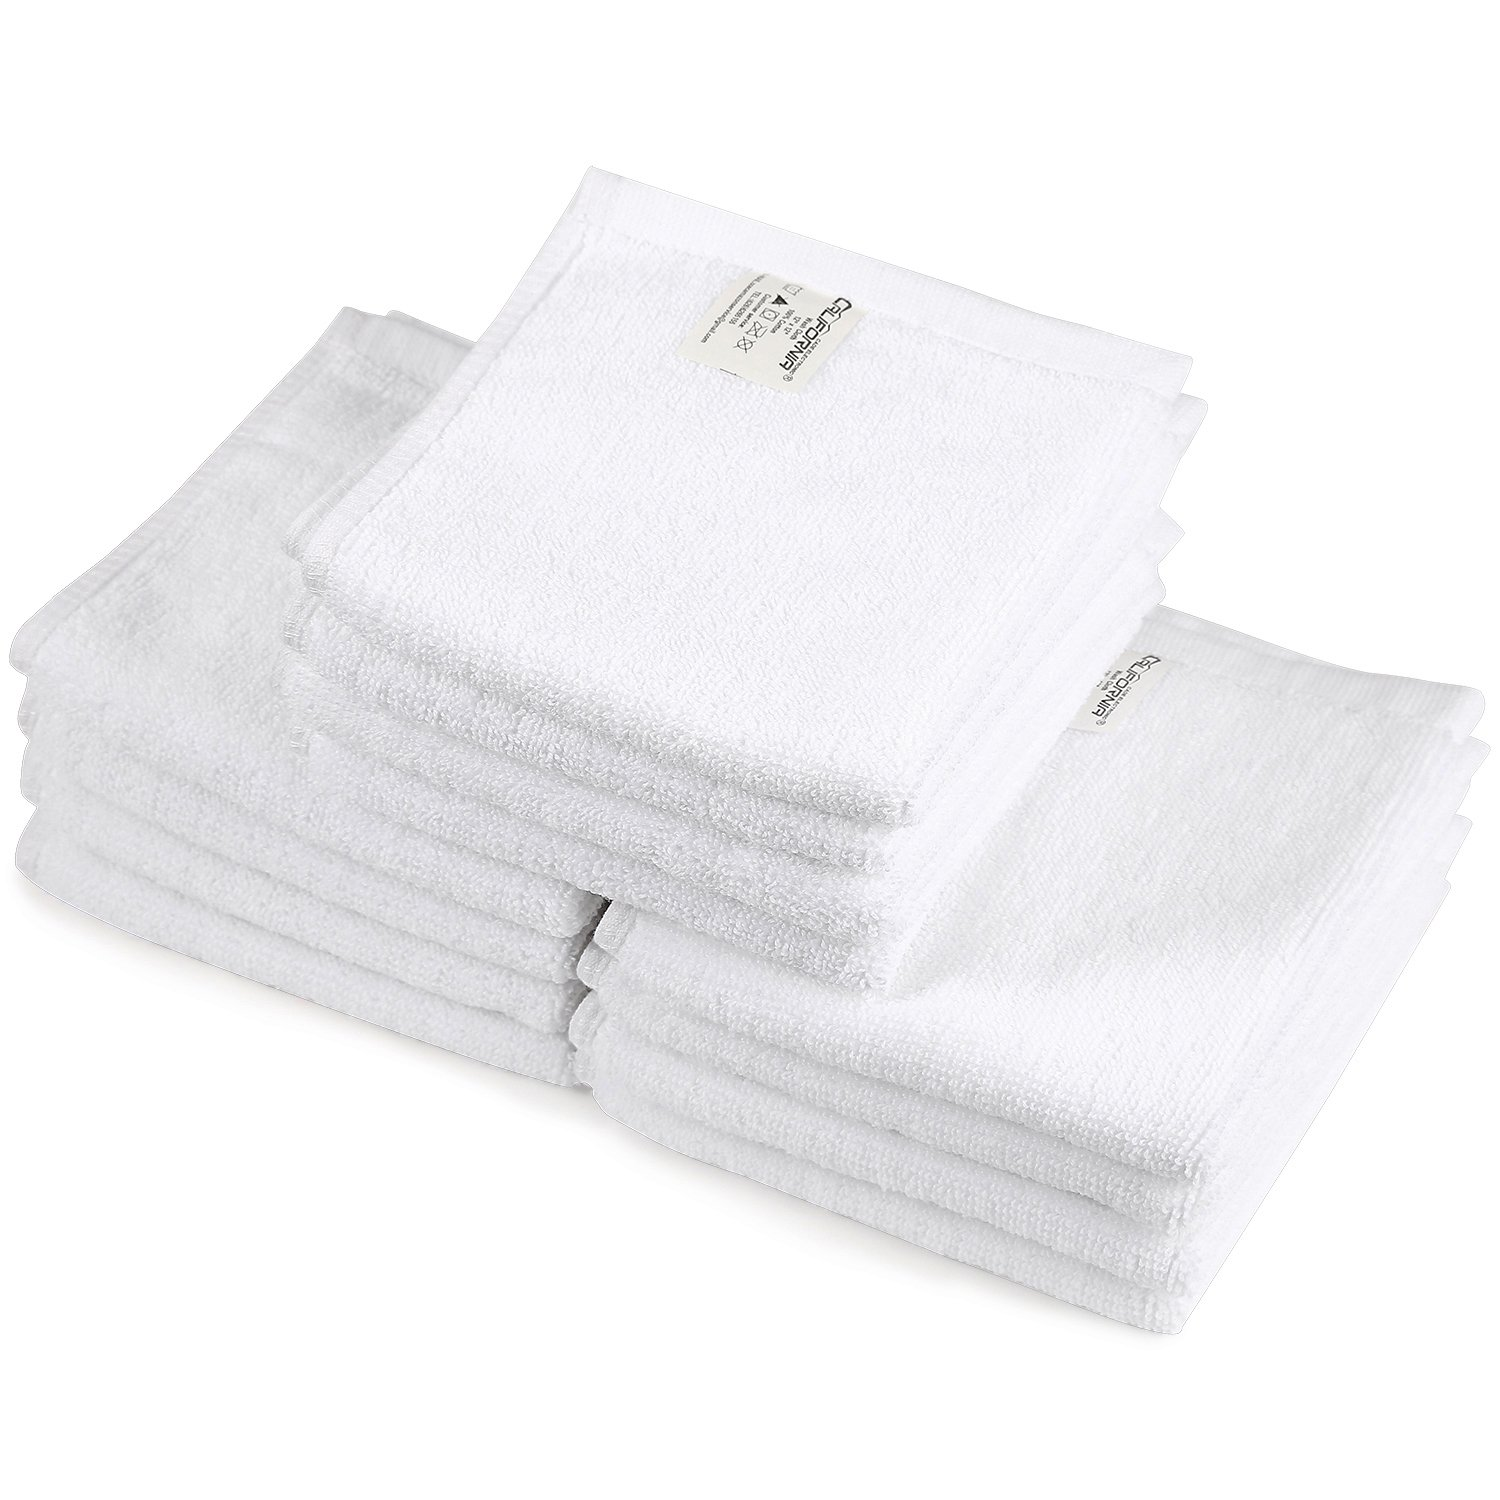 Kitchen Towels, Hand Towels, Towel Set,Commercial Grade Microfiber Towel for use in Bathroom, Kitchen, Nursery and for Cleaning (12''*12'', White)